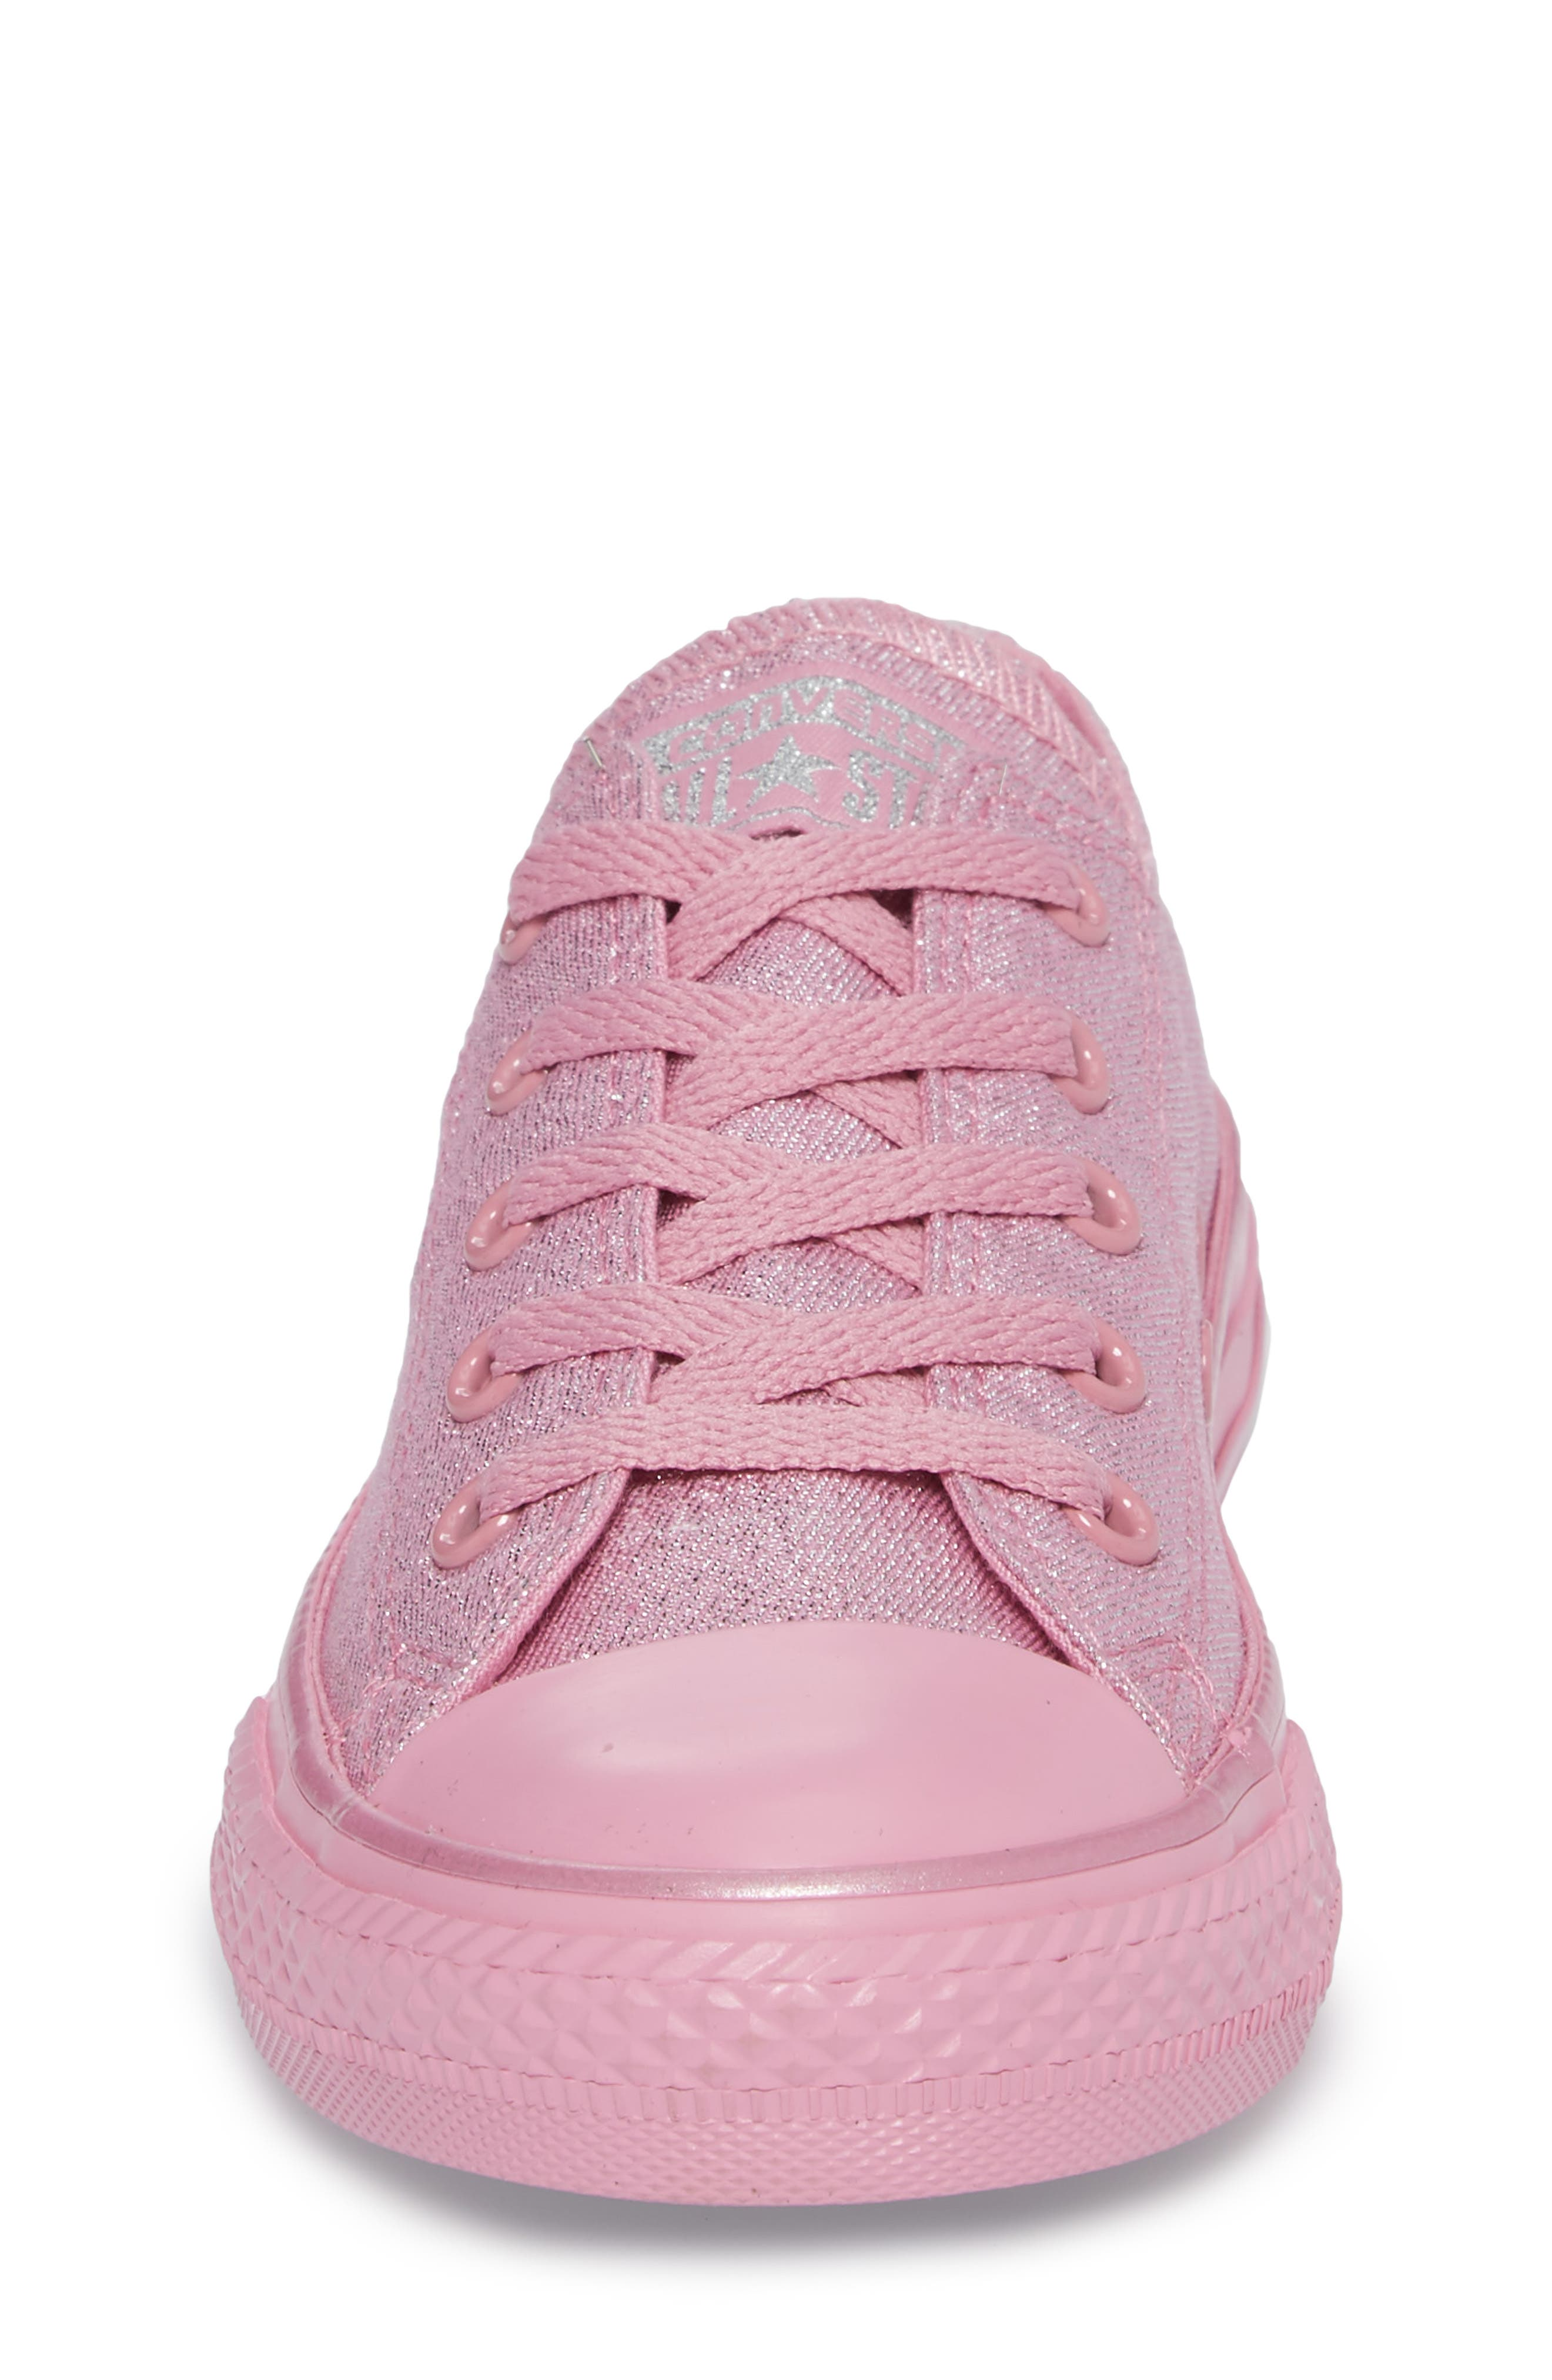 Alternate Image 4  - Converse All Star® Mono Shine Low Top Sneaker (Toddler, Little Kid & Big Kid)